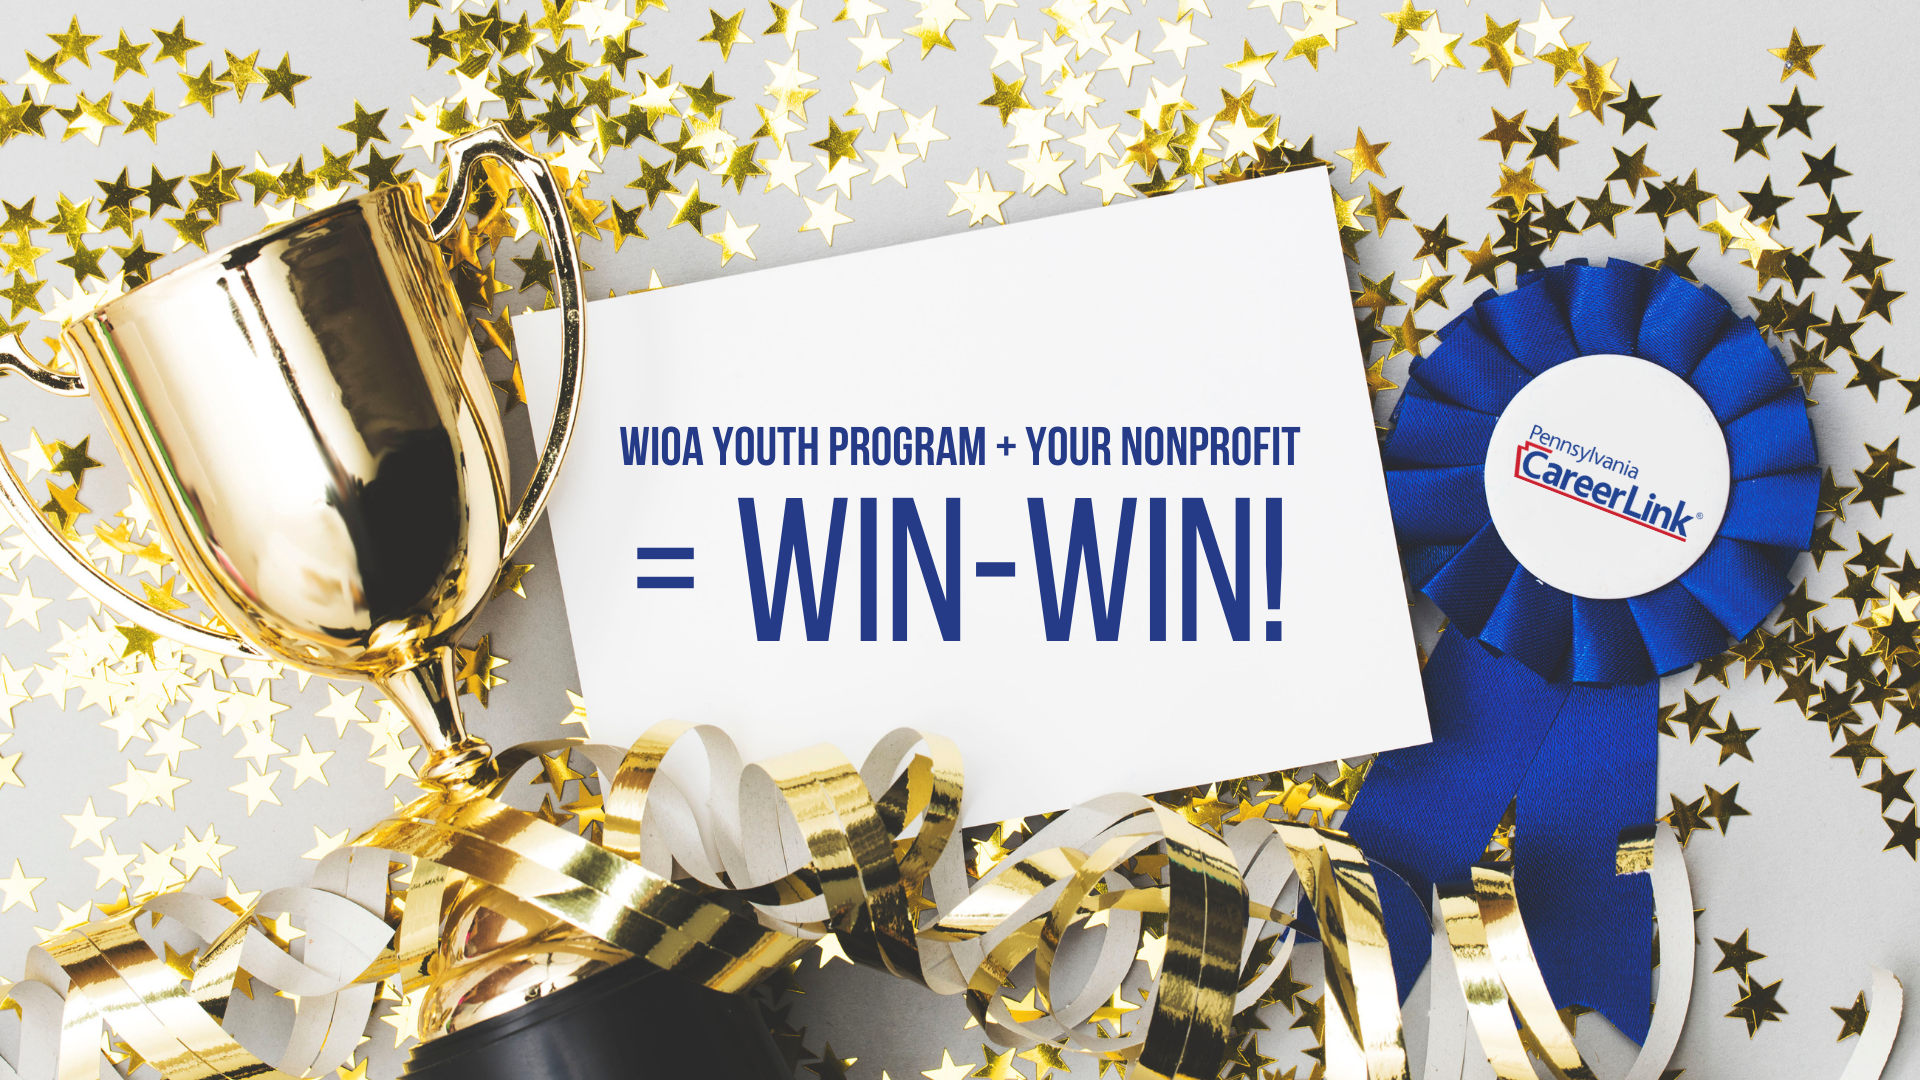 [Zoom Meeting] WIOA Youth Program + Your Nonprofit = Win-Win!